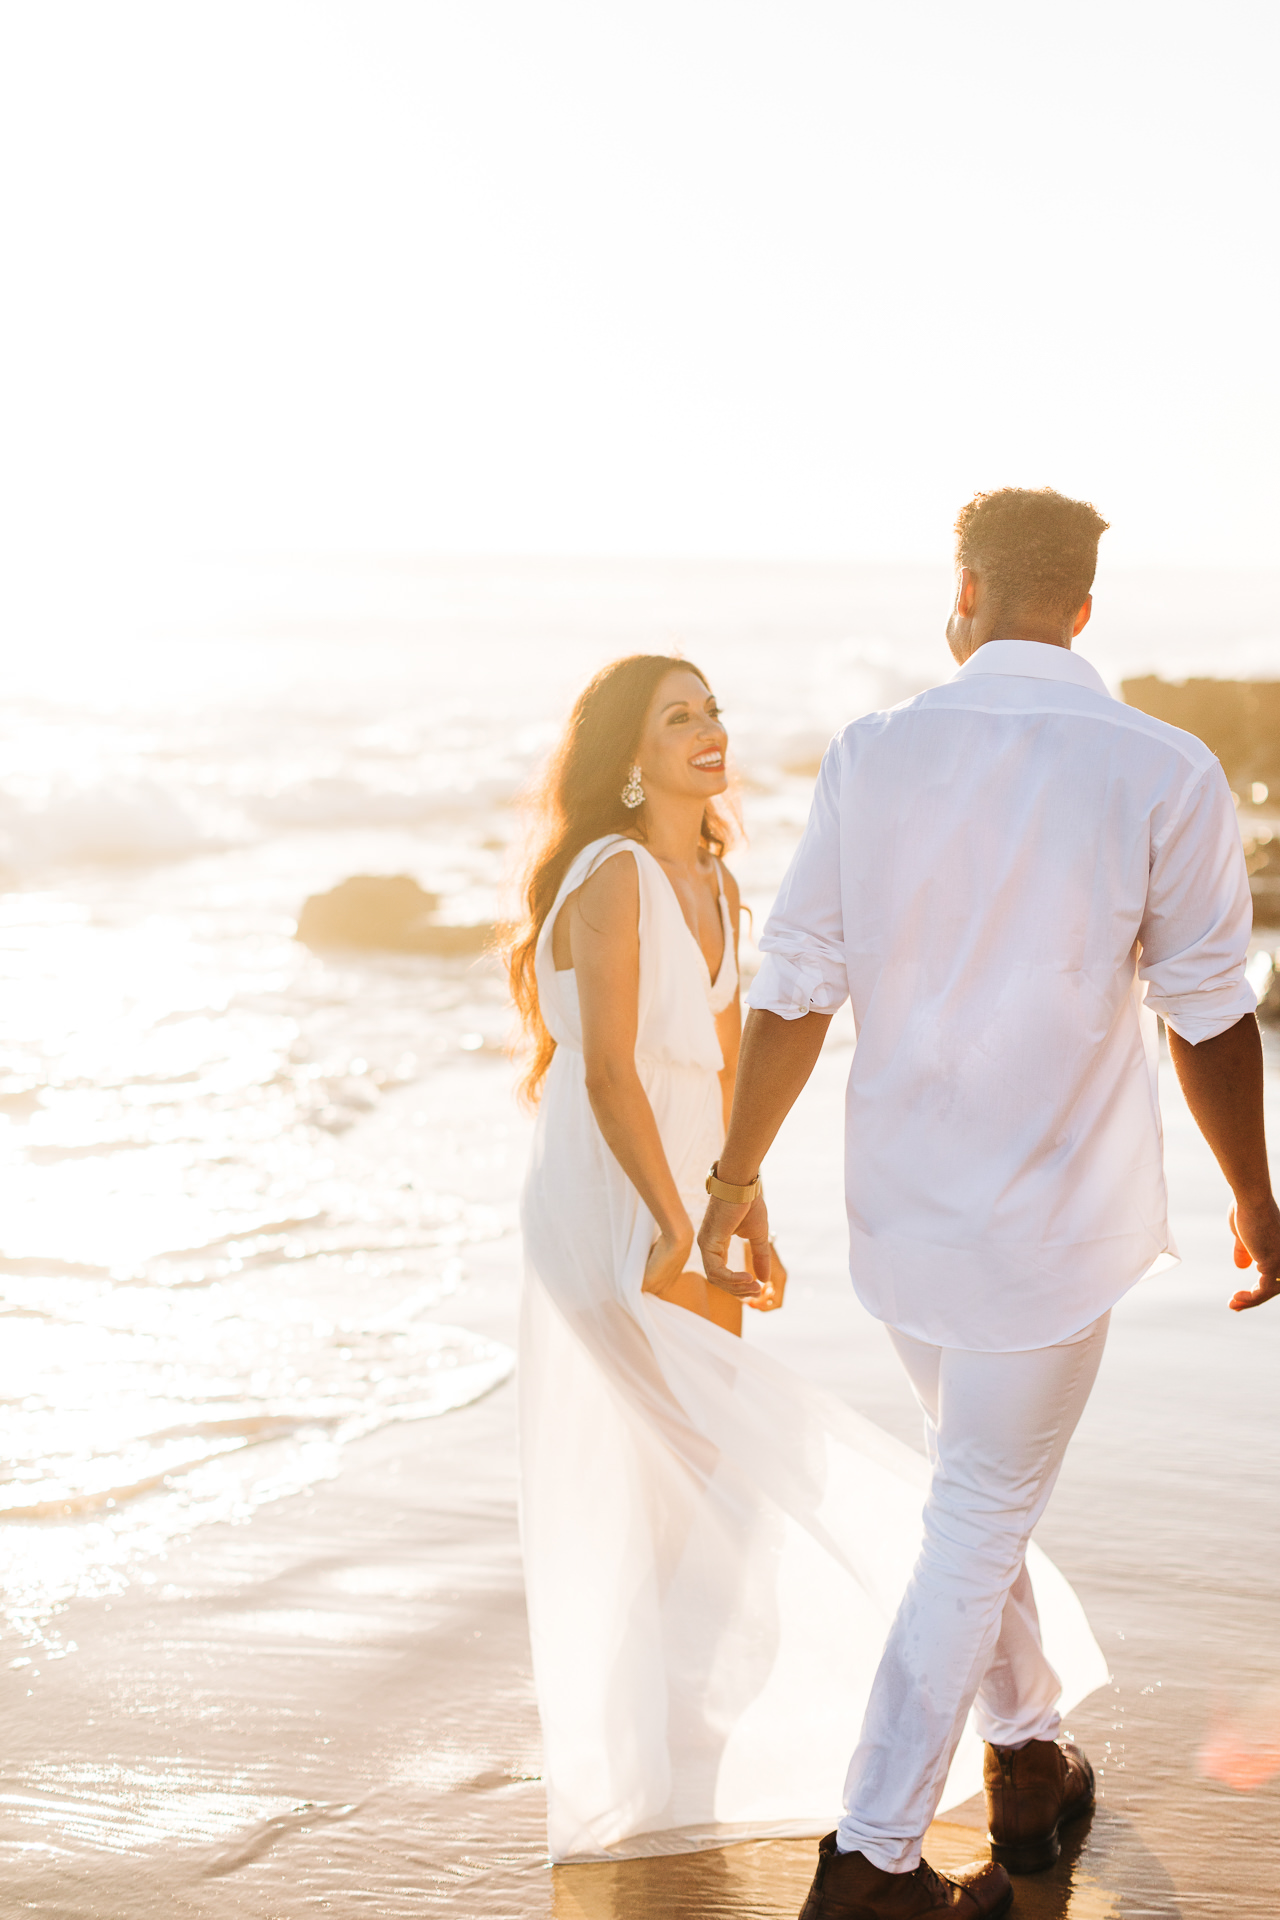 Nanis&Jay-Crystal-Cove-Beach-Engagement-Session-Clarisse-Rae-Photo-&-Video-Orange-County-Wedding-Photographer-&-Videographer_28